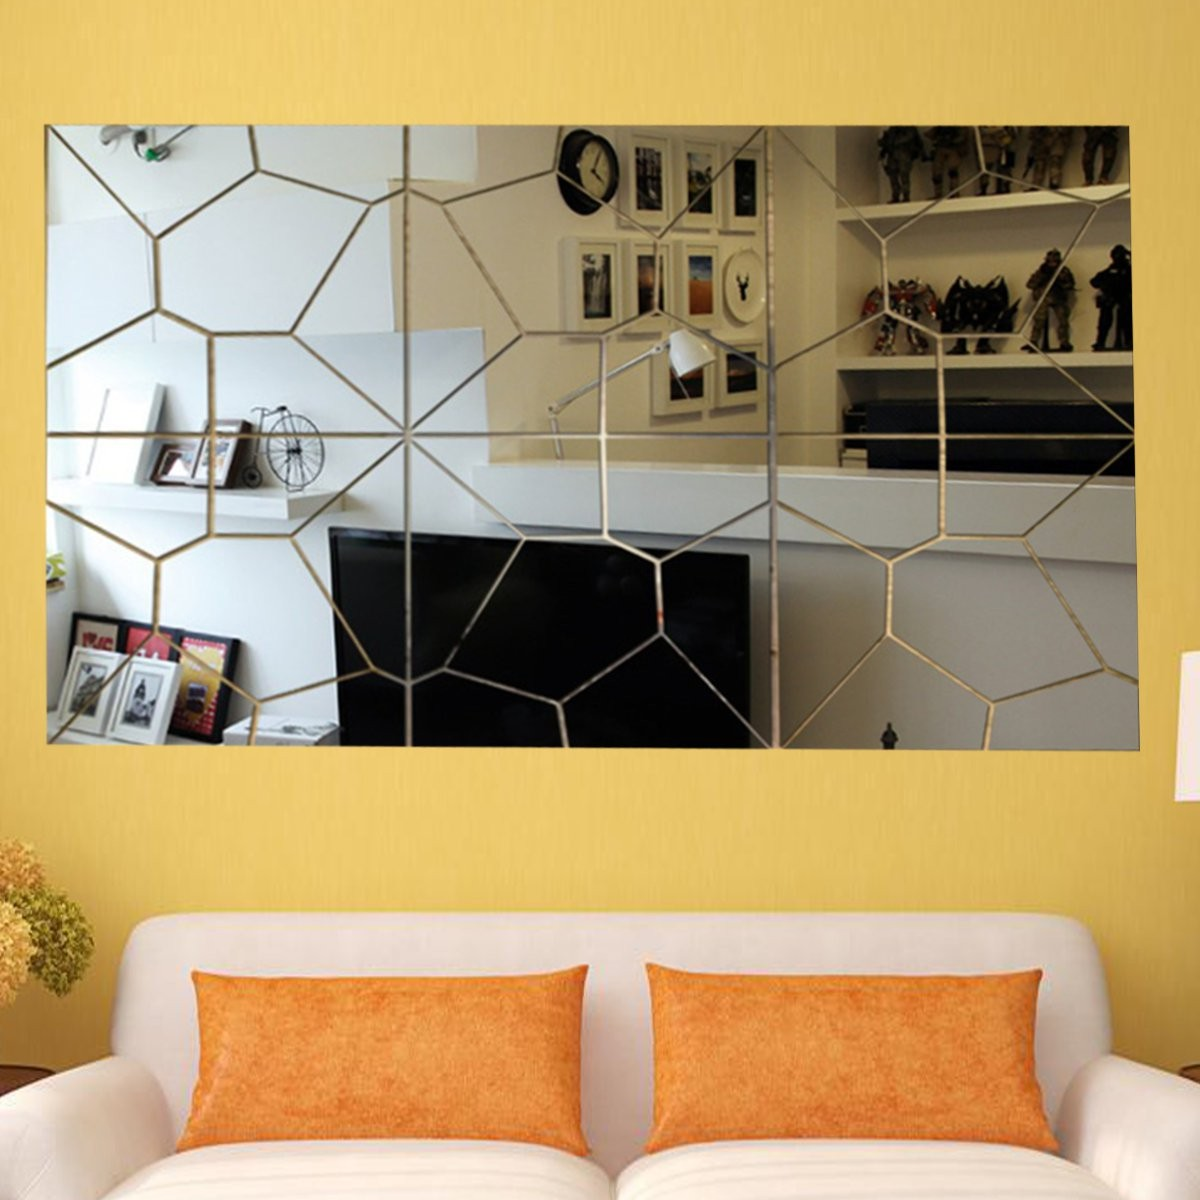 7pcs 3D Mirror Irregular Wall Sticker Decal DIY Home Room Art Mural Decor Removable